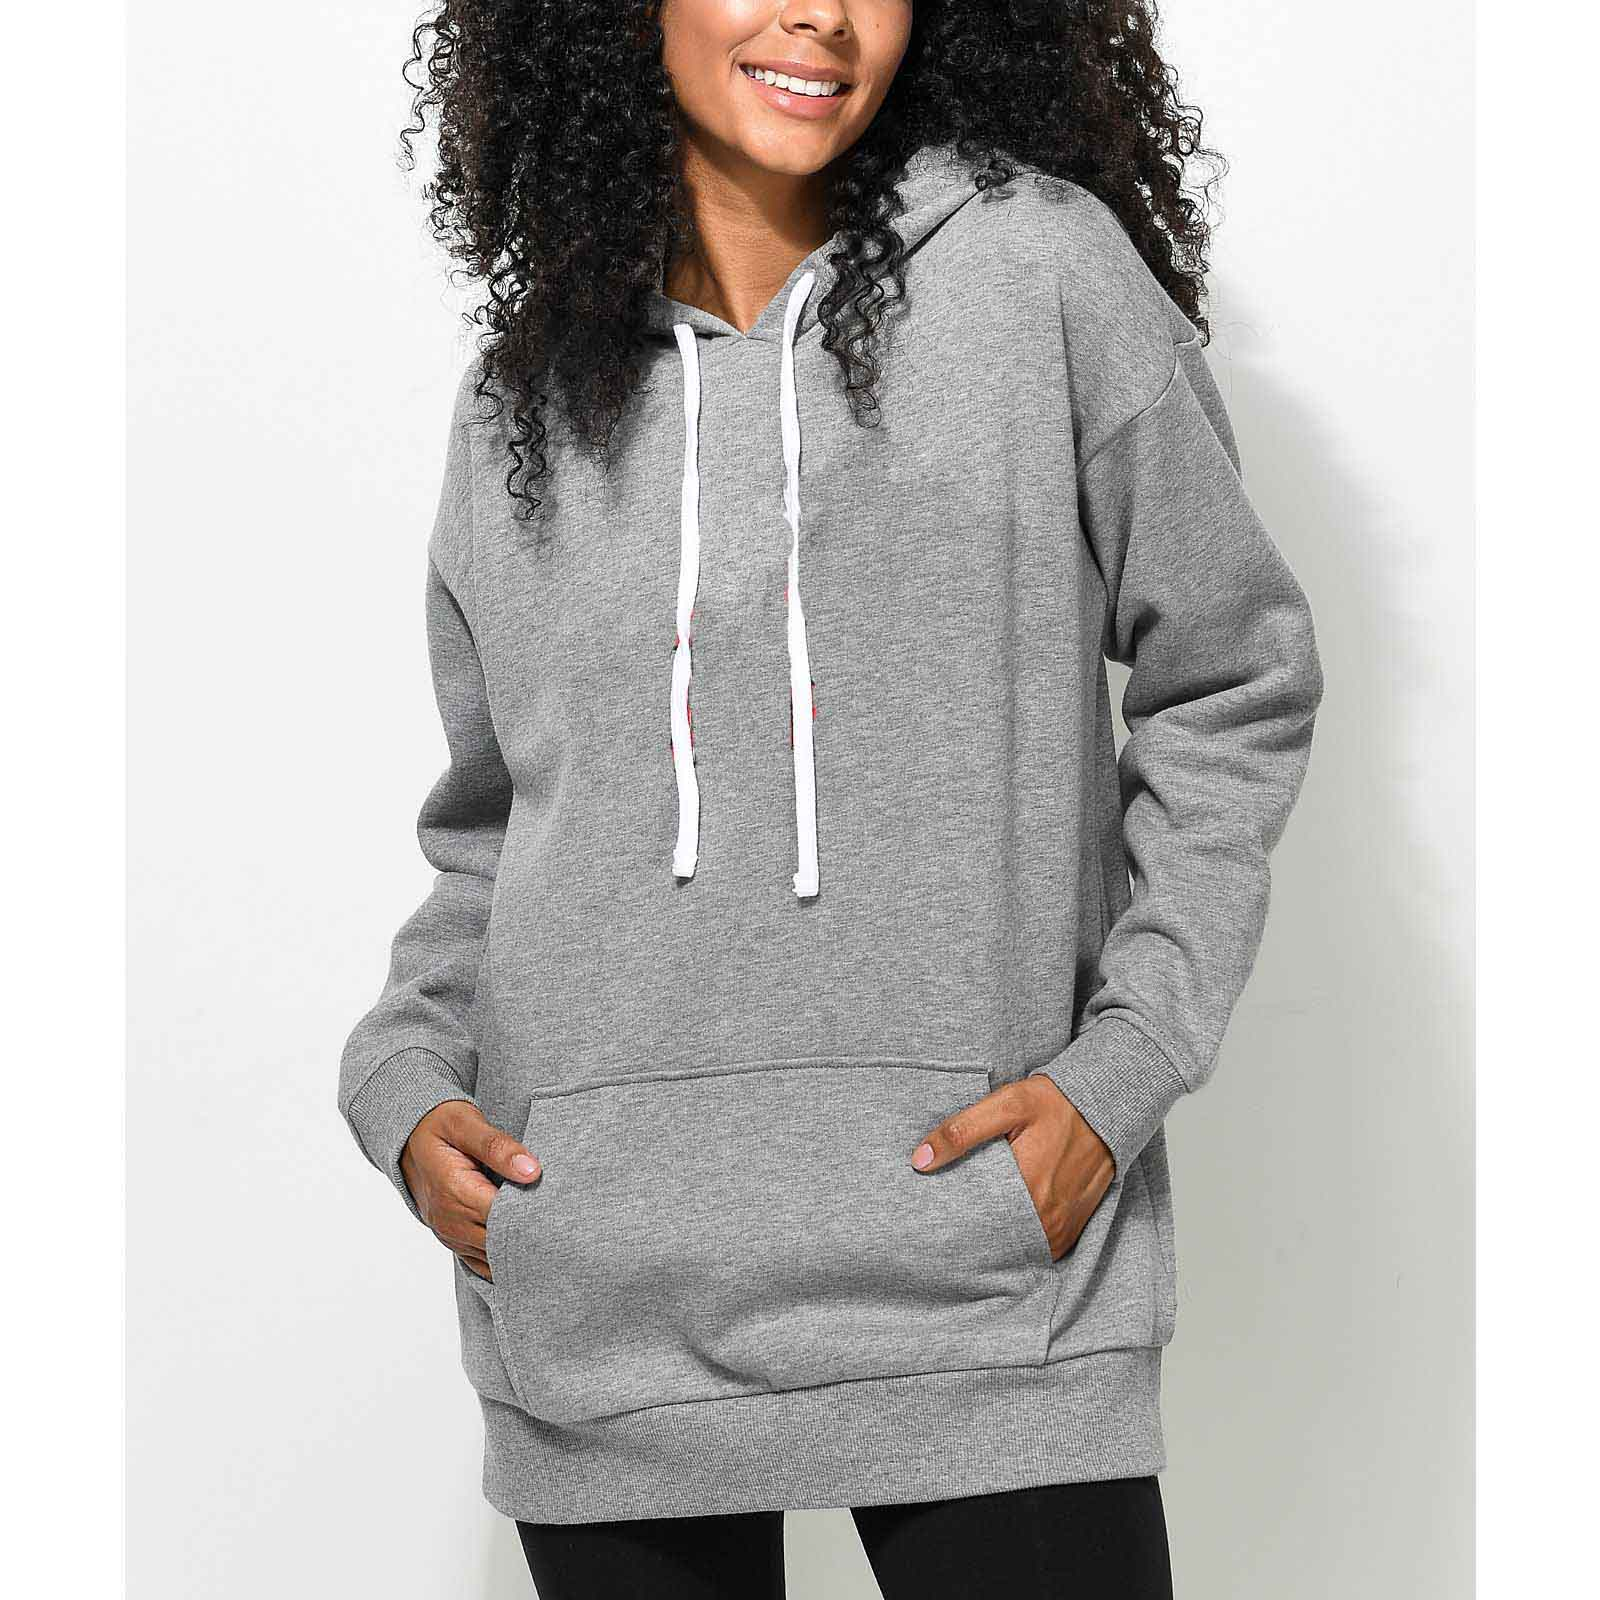 111e8e5687f0d6 Custom Cut and Sew Hoodie Manufacturers and Contractors